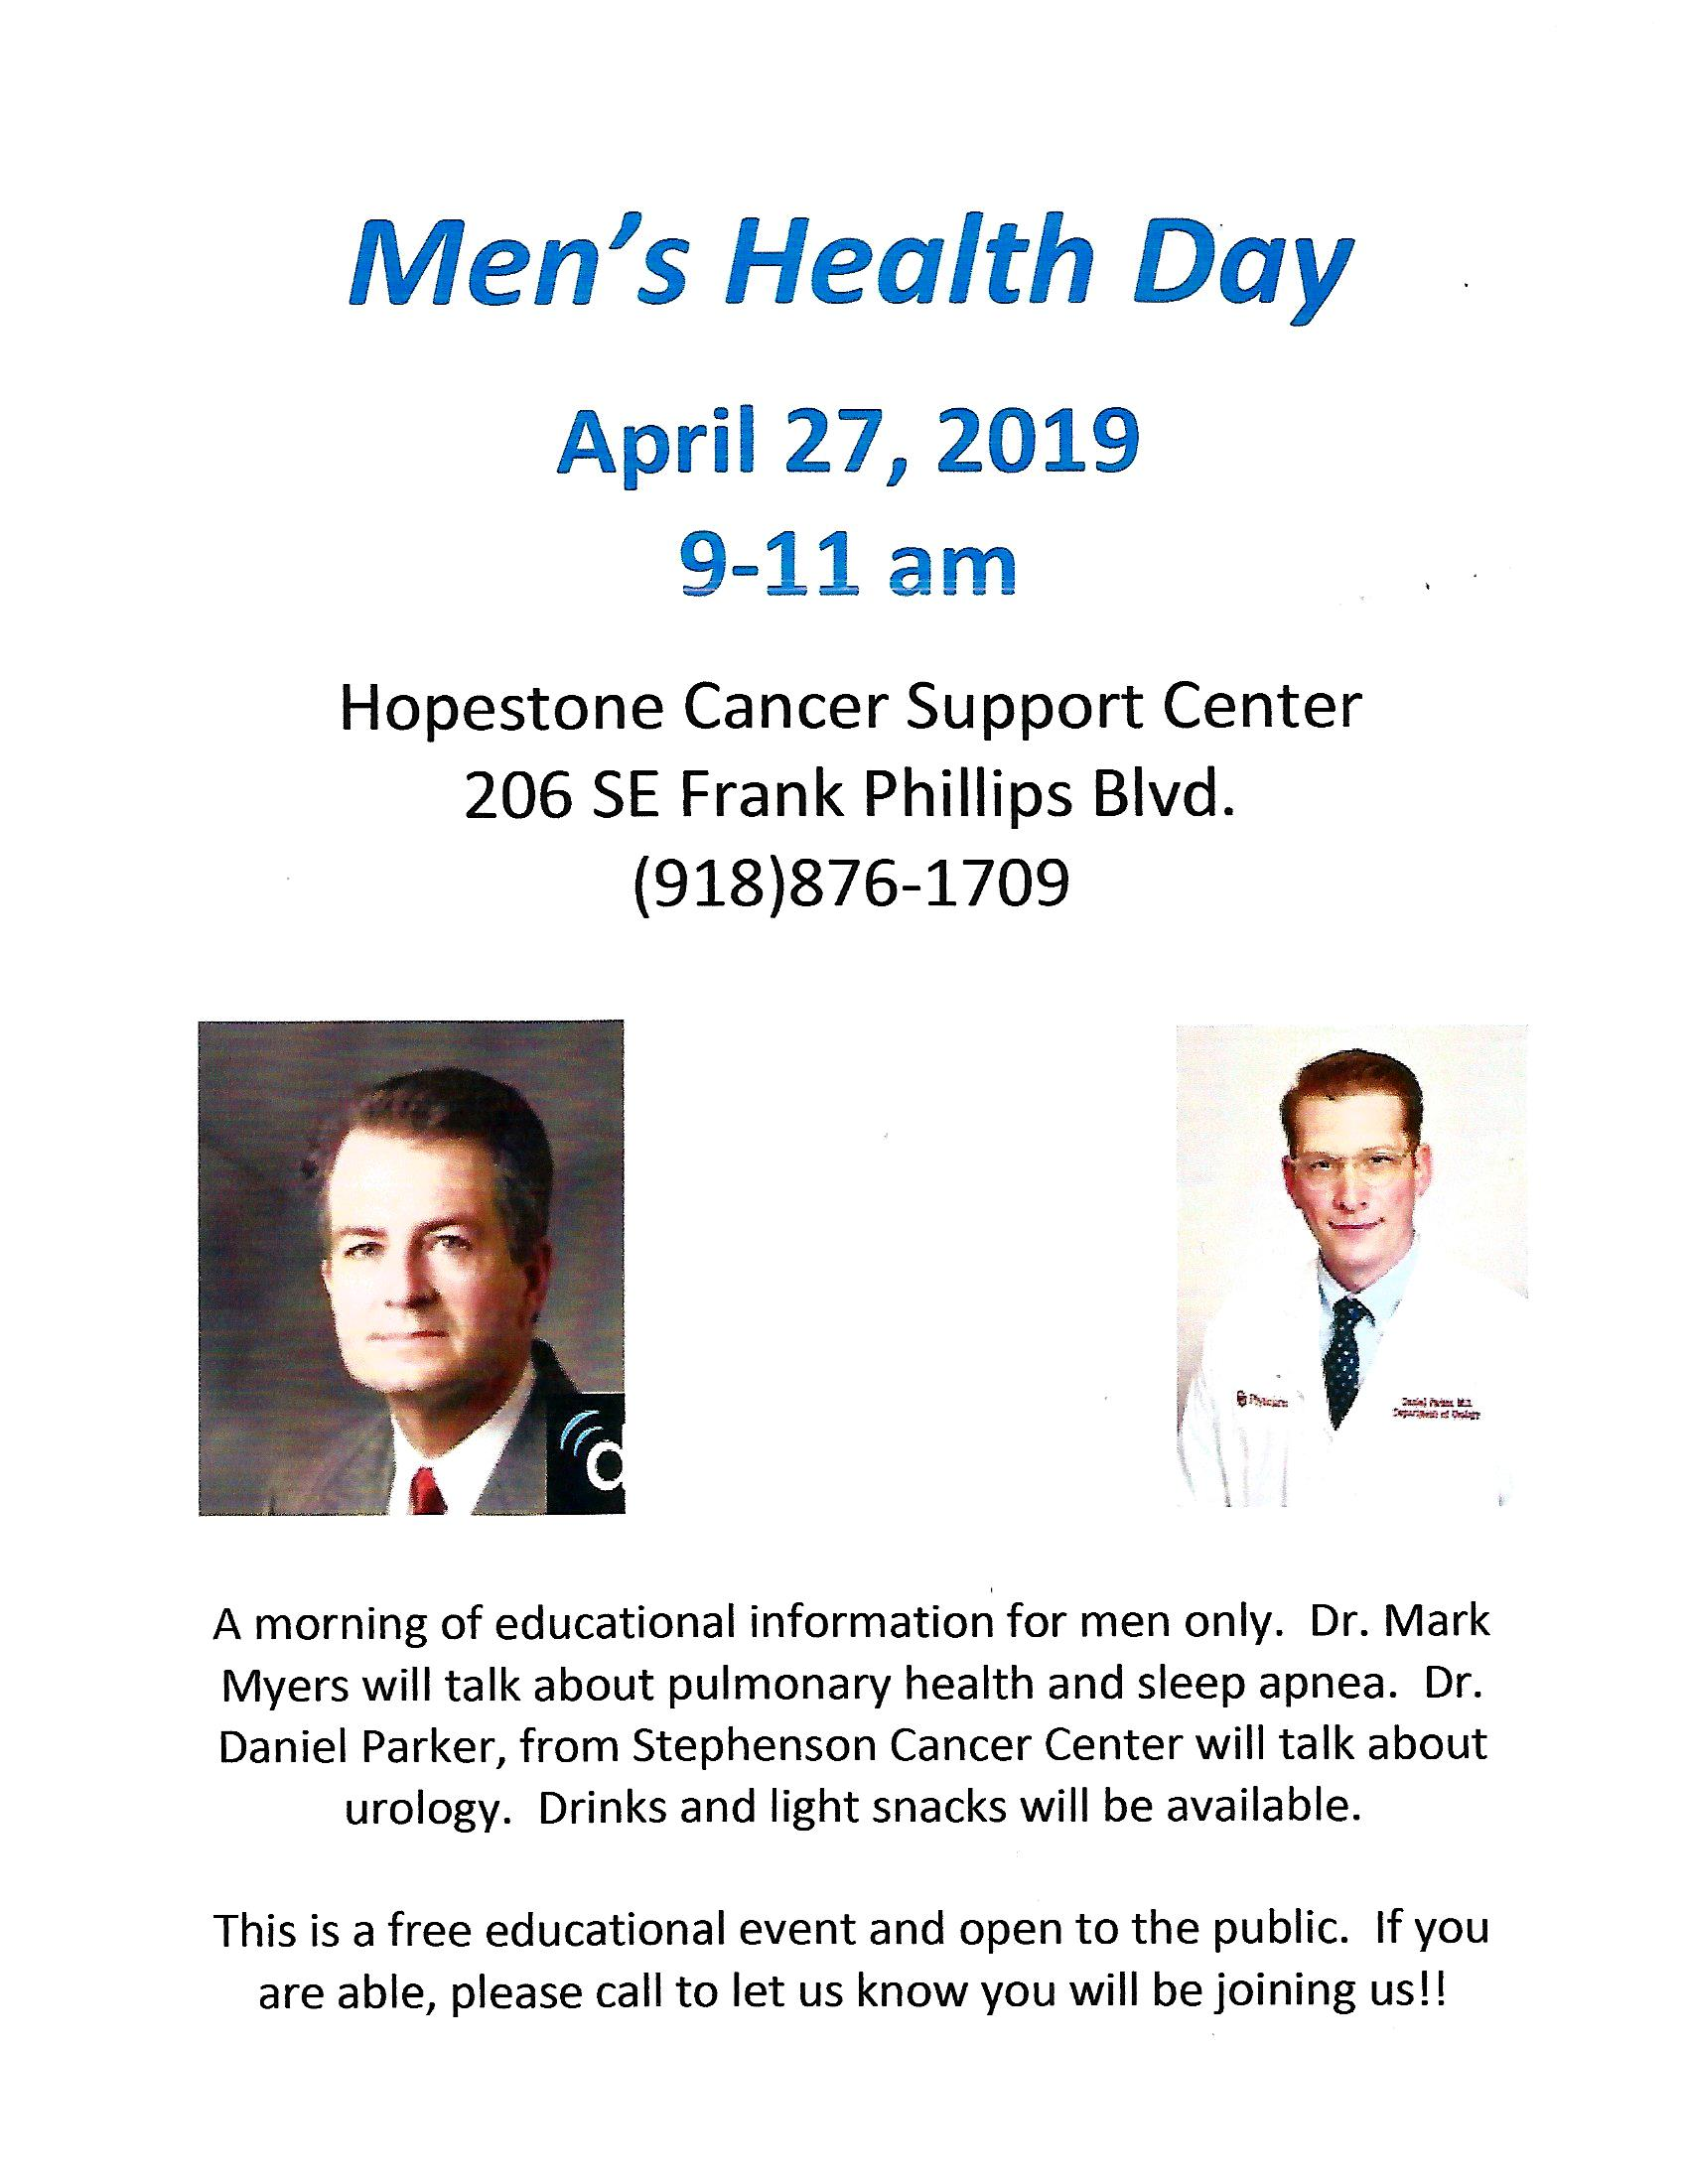 Men's Health Day 2019.jpg